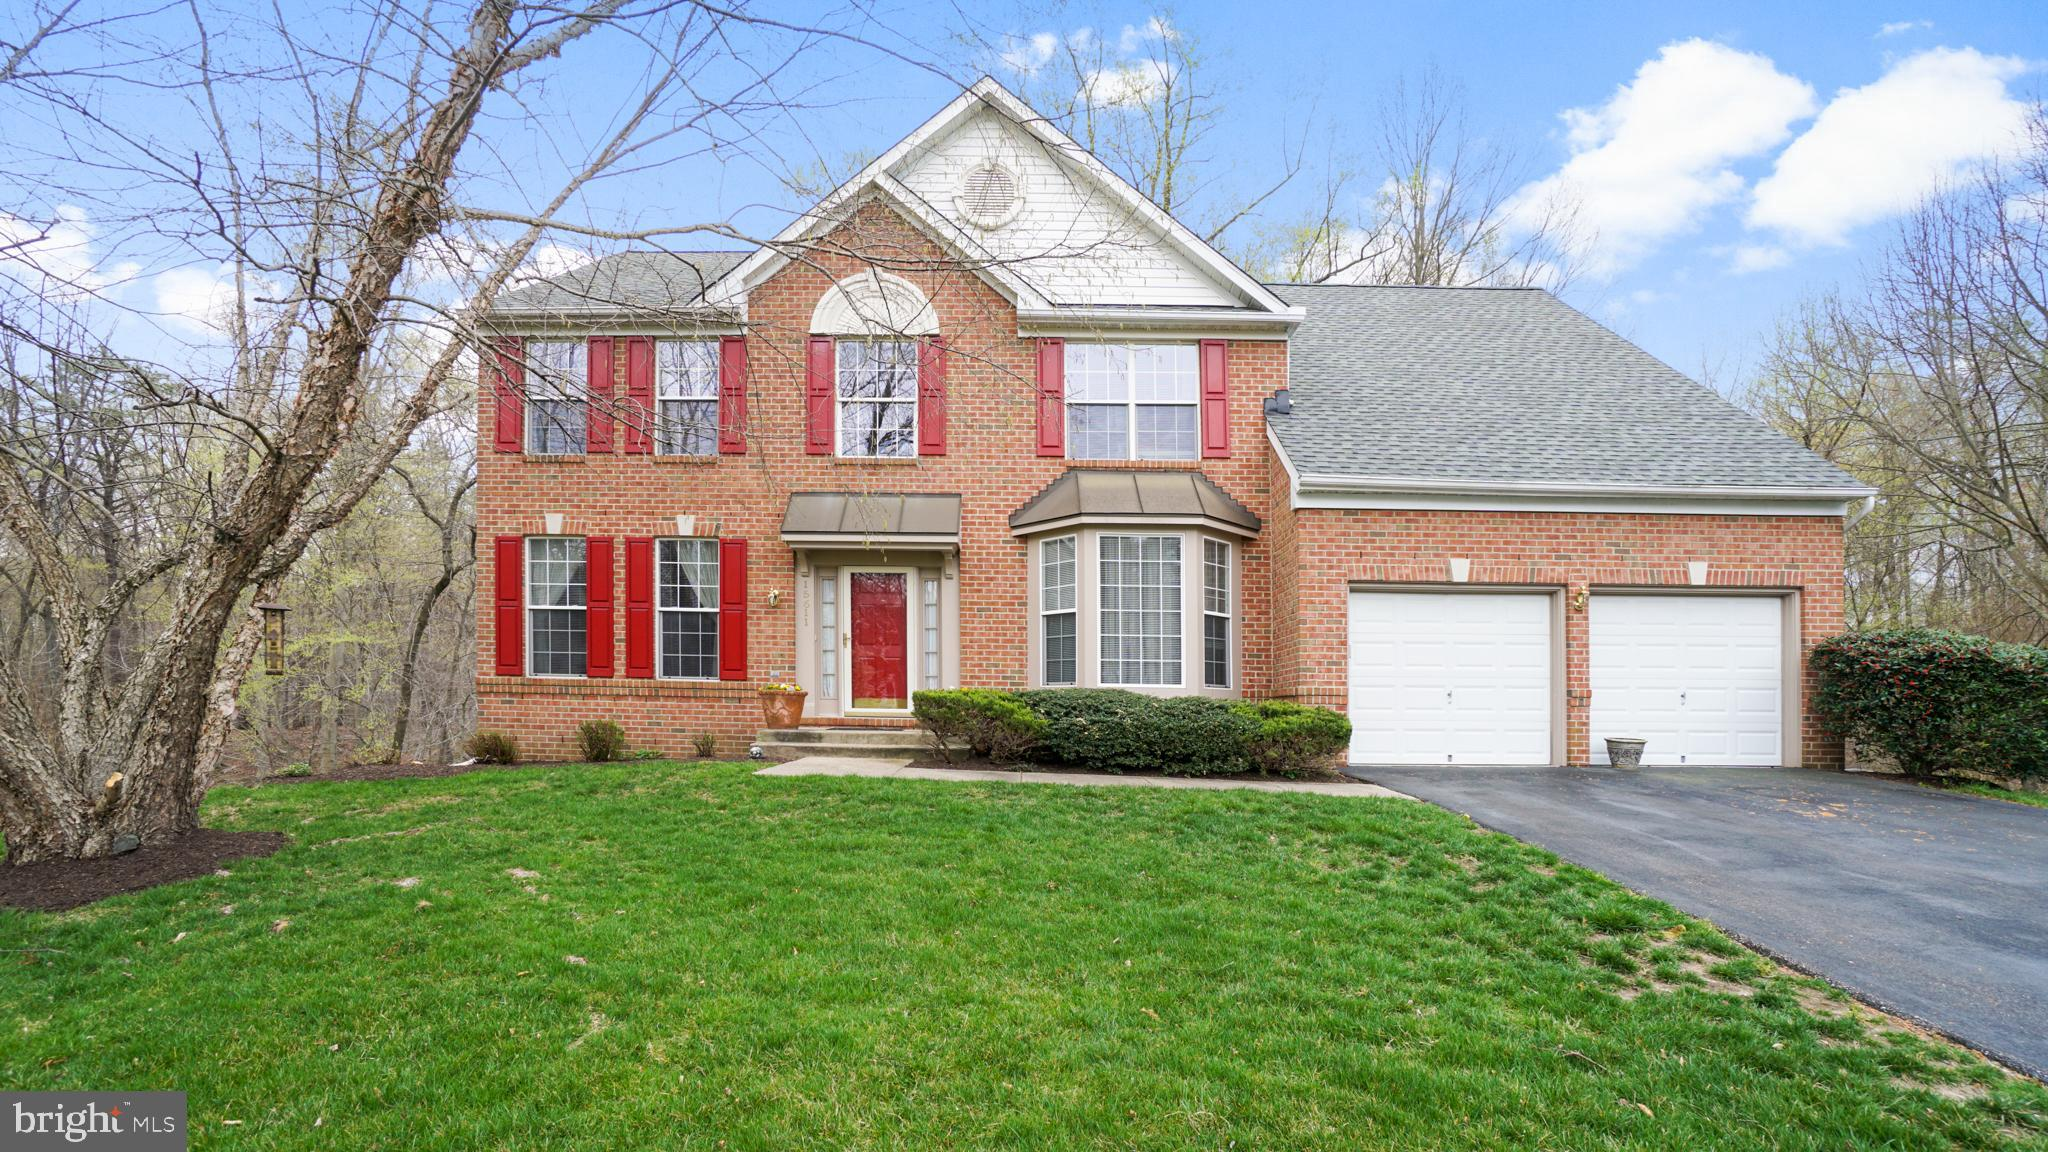 15611 OVERCHASE LANE, BOWIE, MD 20715